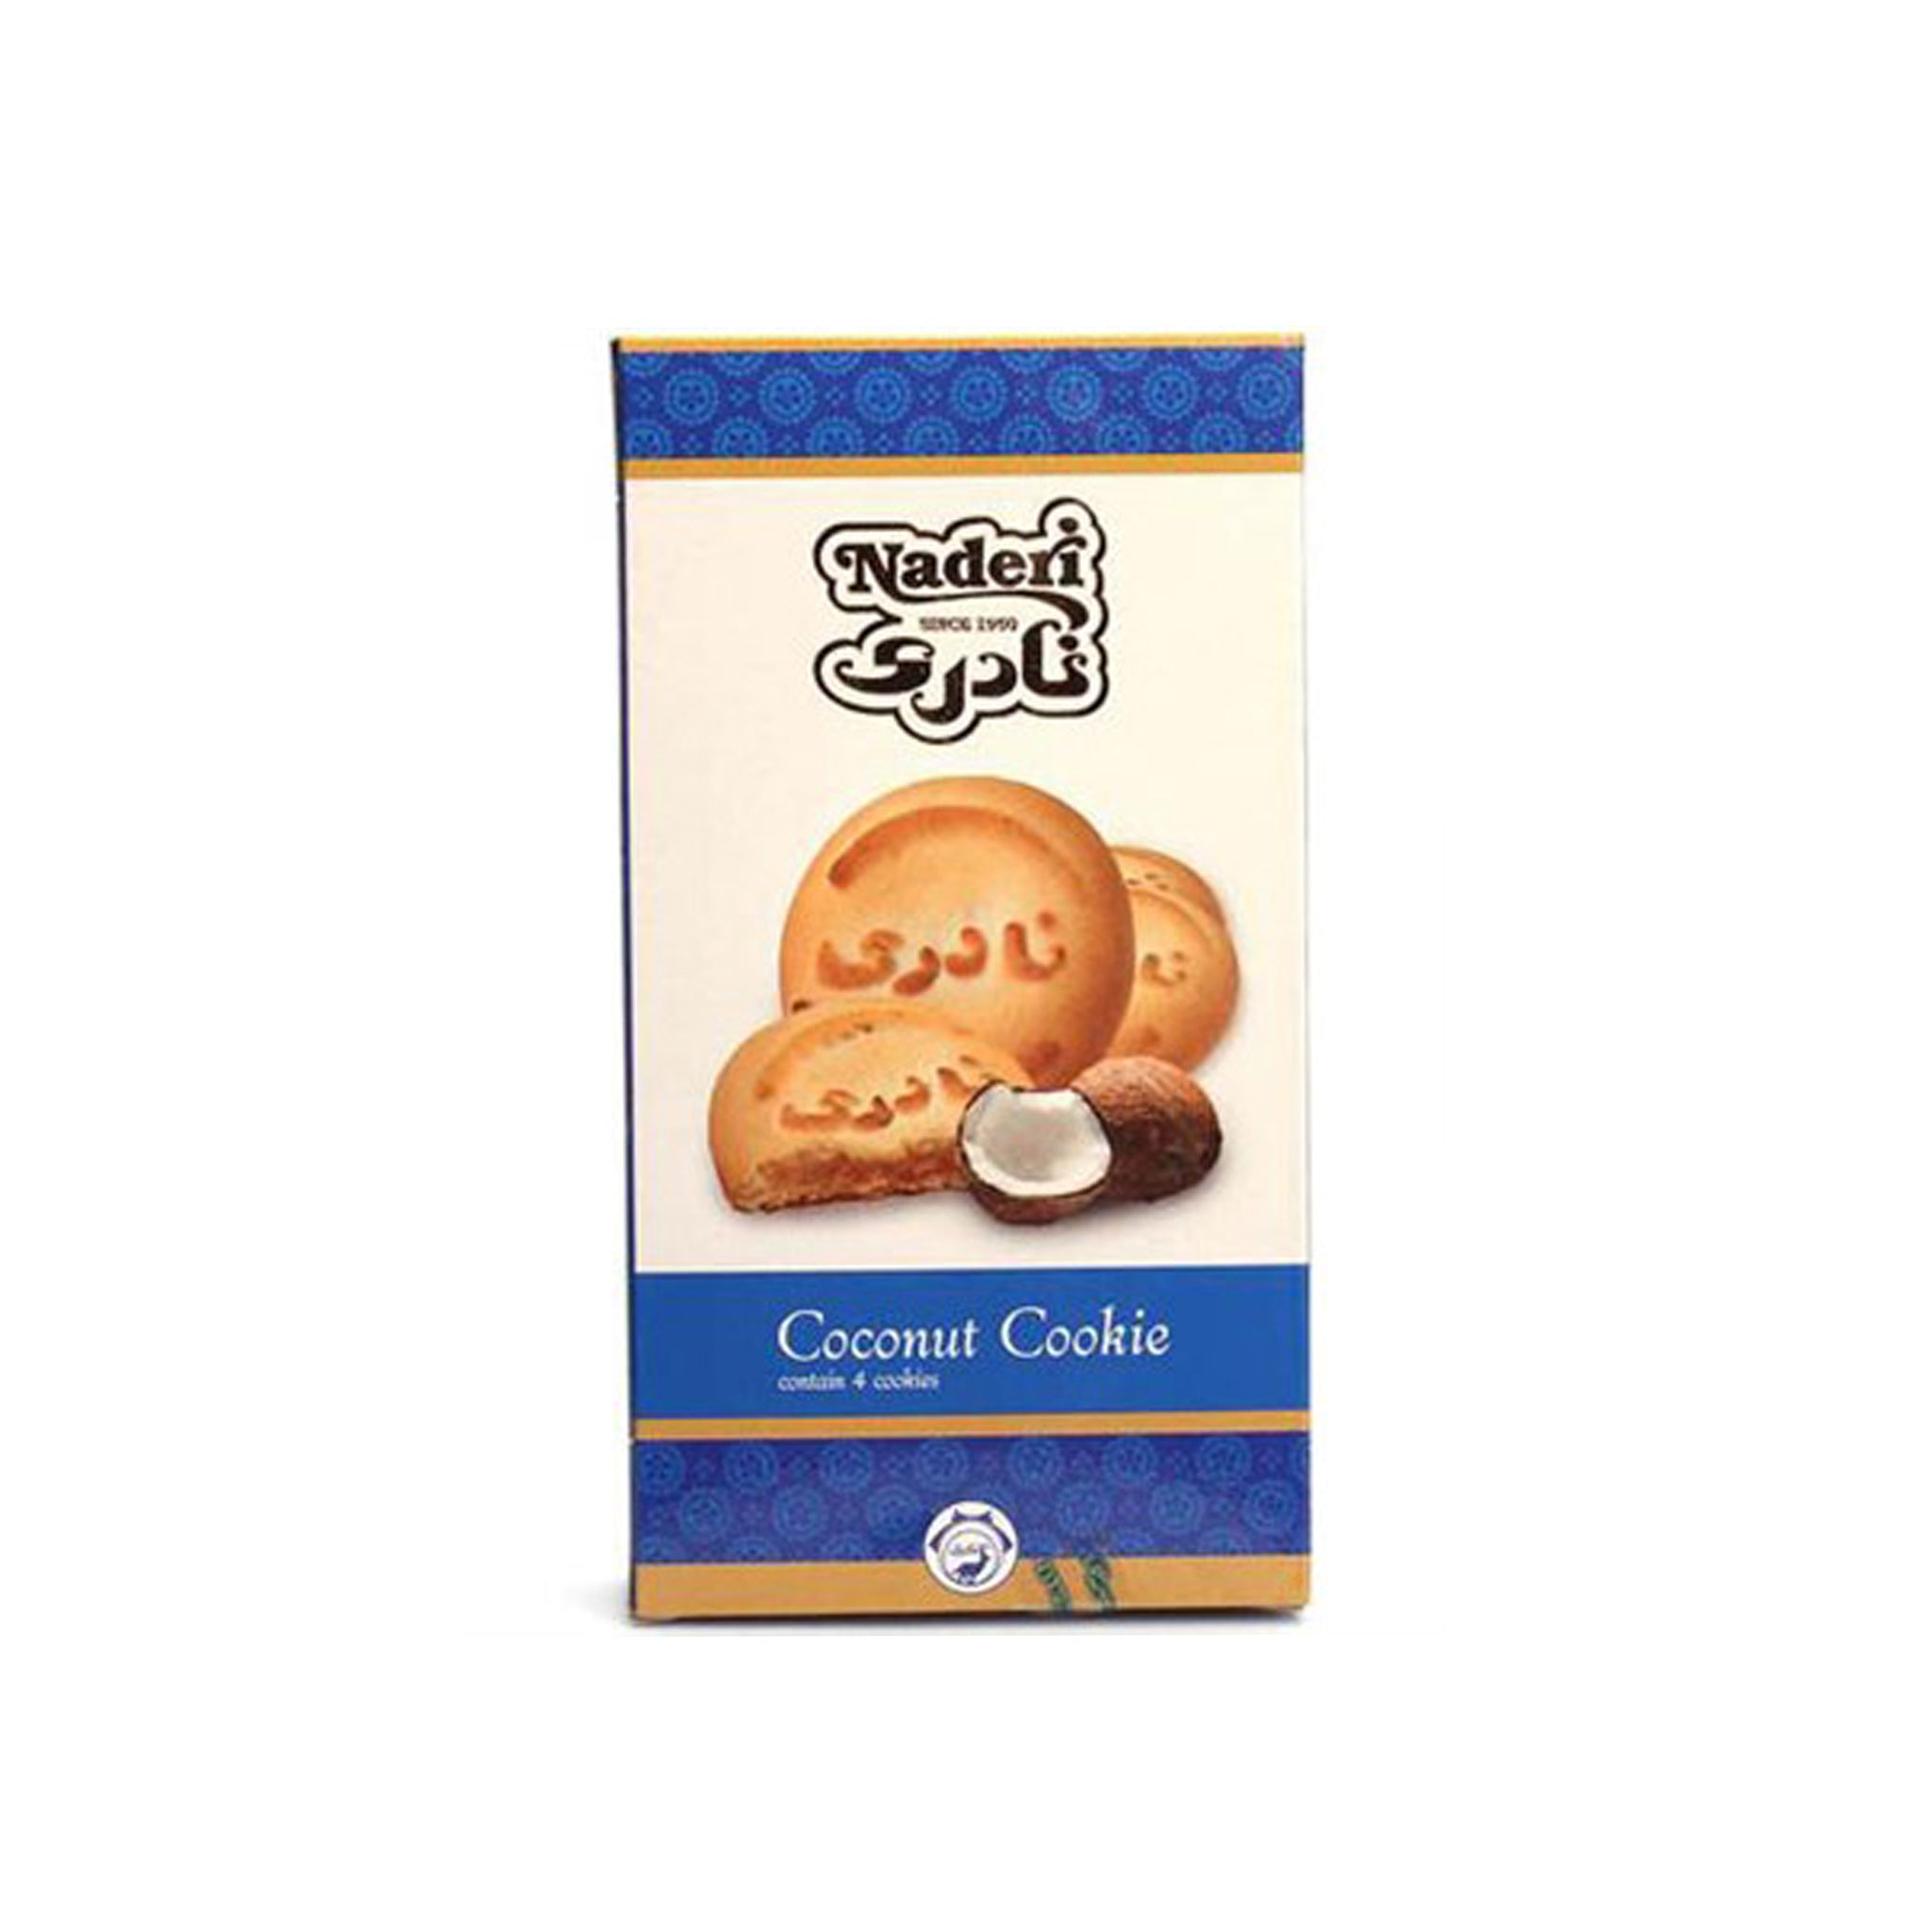 Naderi Coconut Cookie